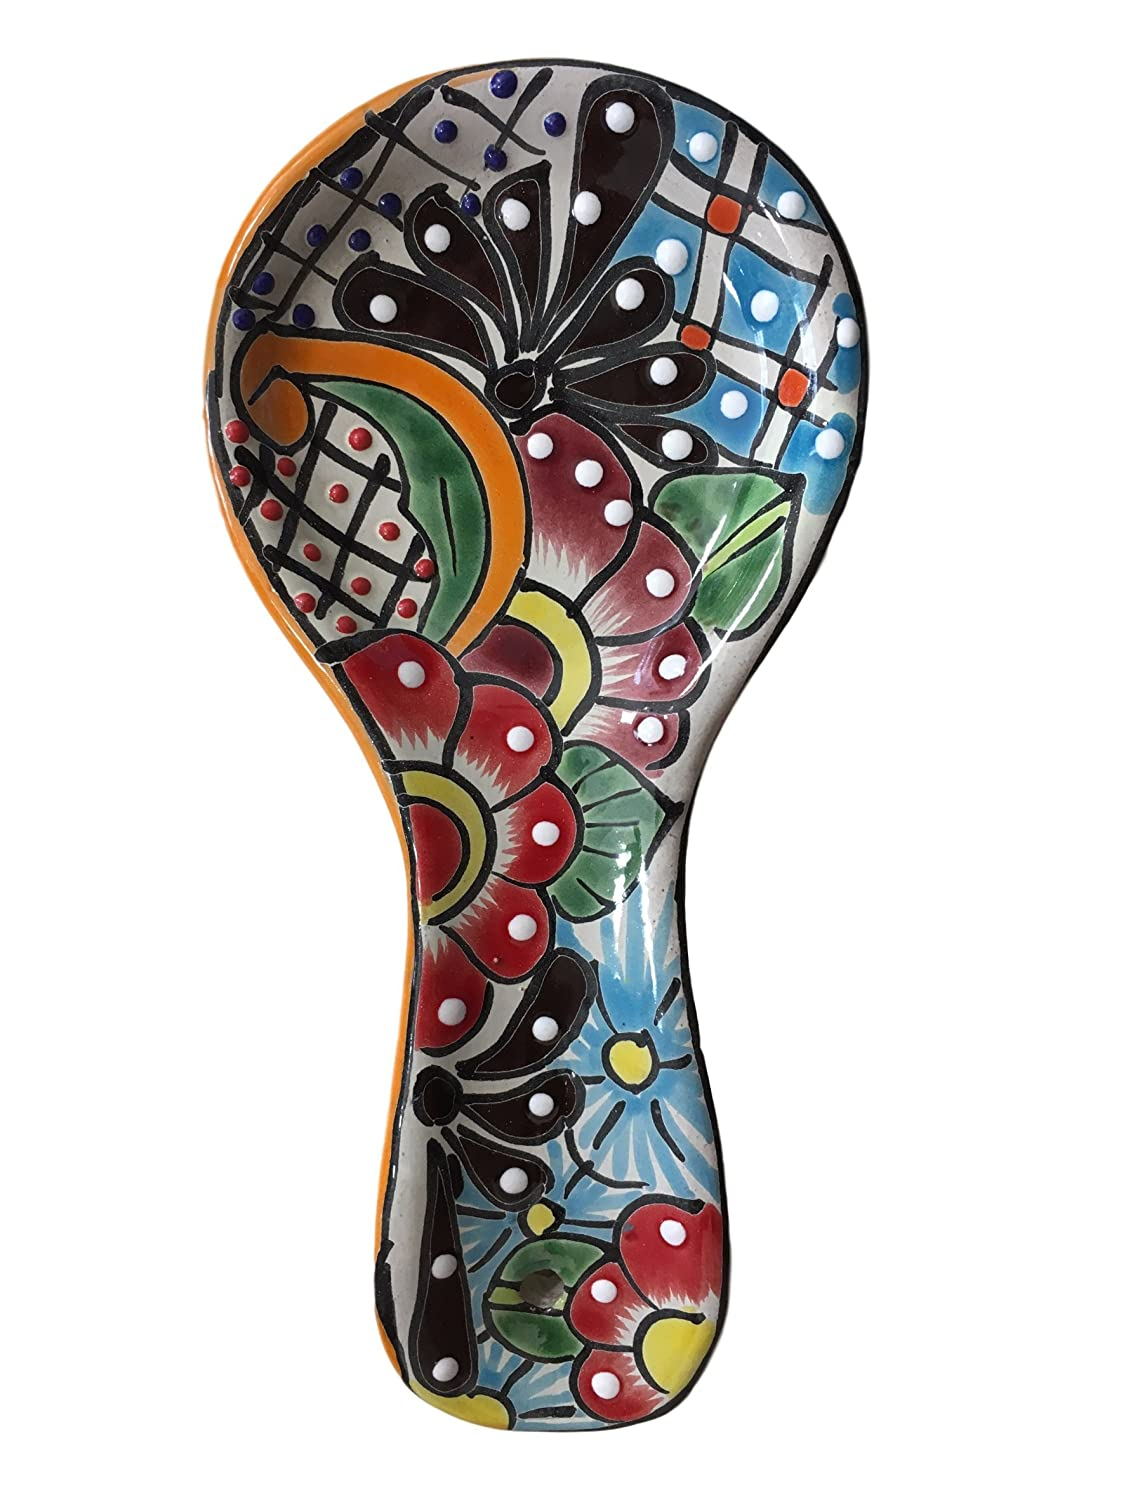 Colorful Kitchen Ceramic Spoon Rest - Hand Painted - Mexican Style Casa Fiesta Designs